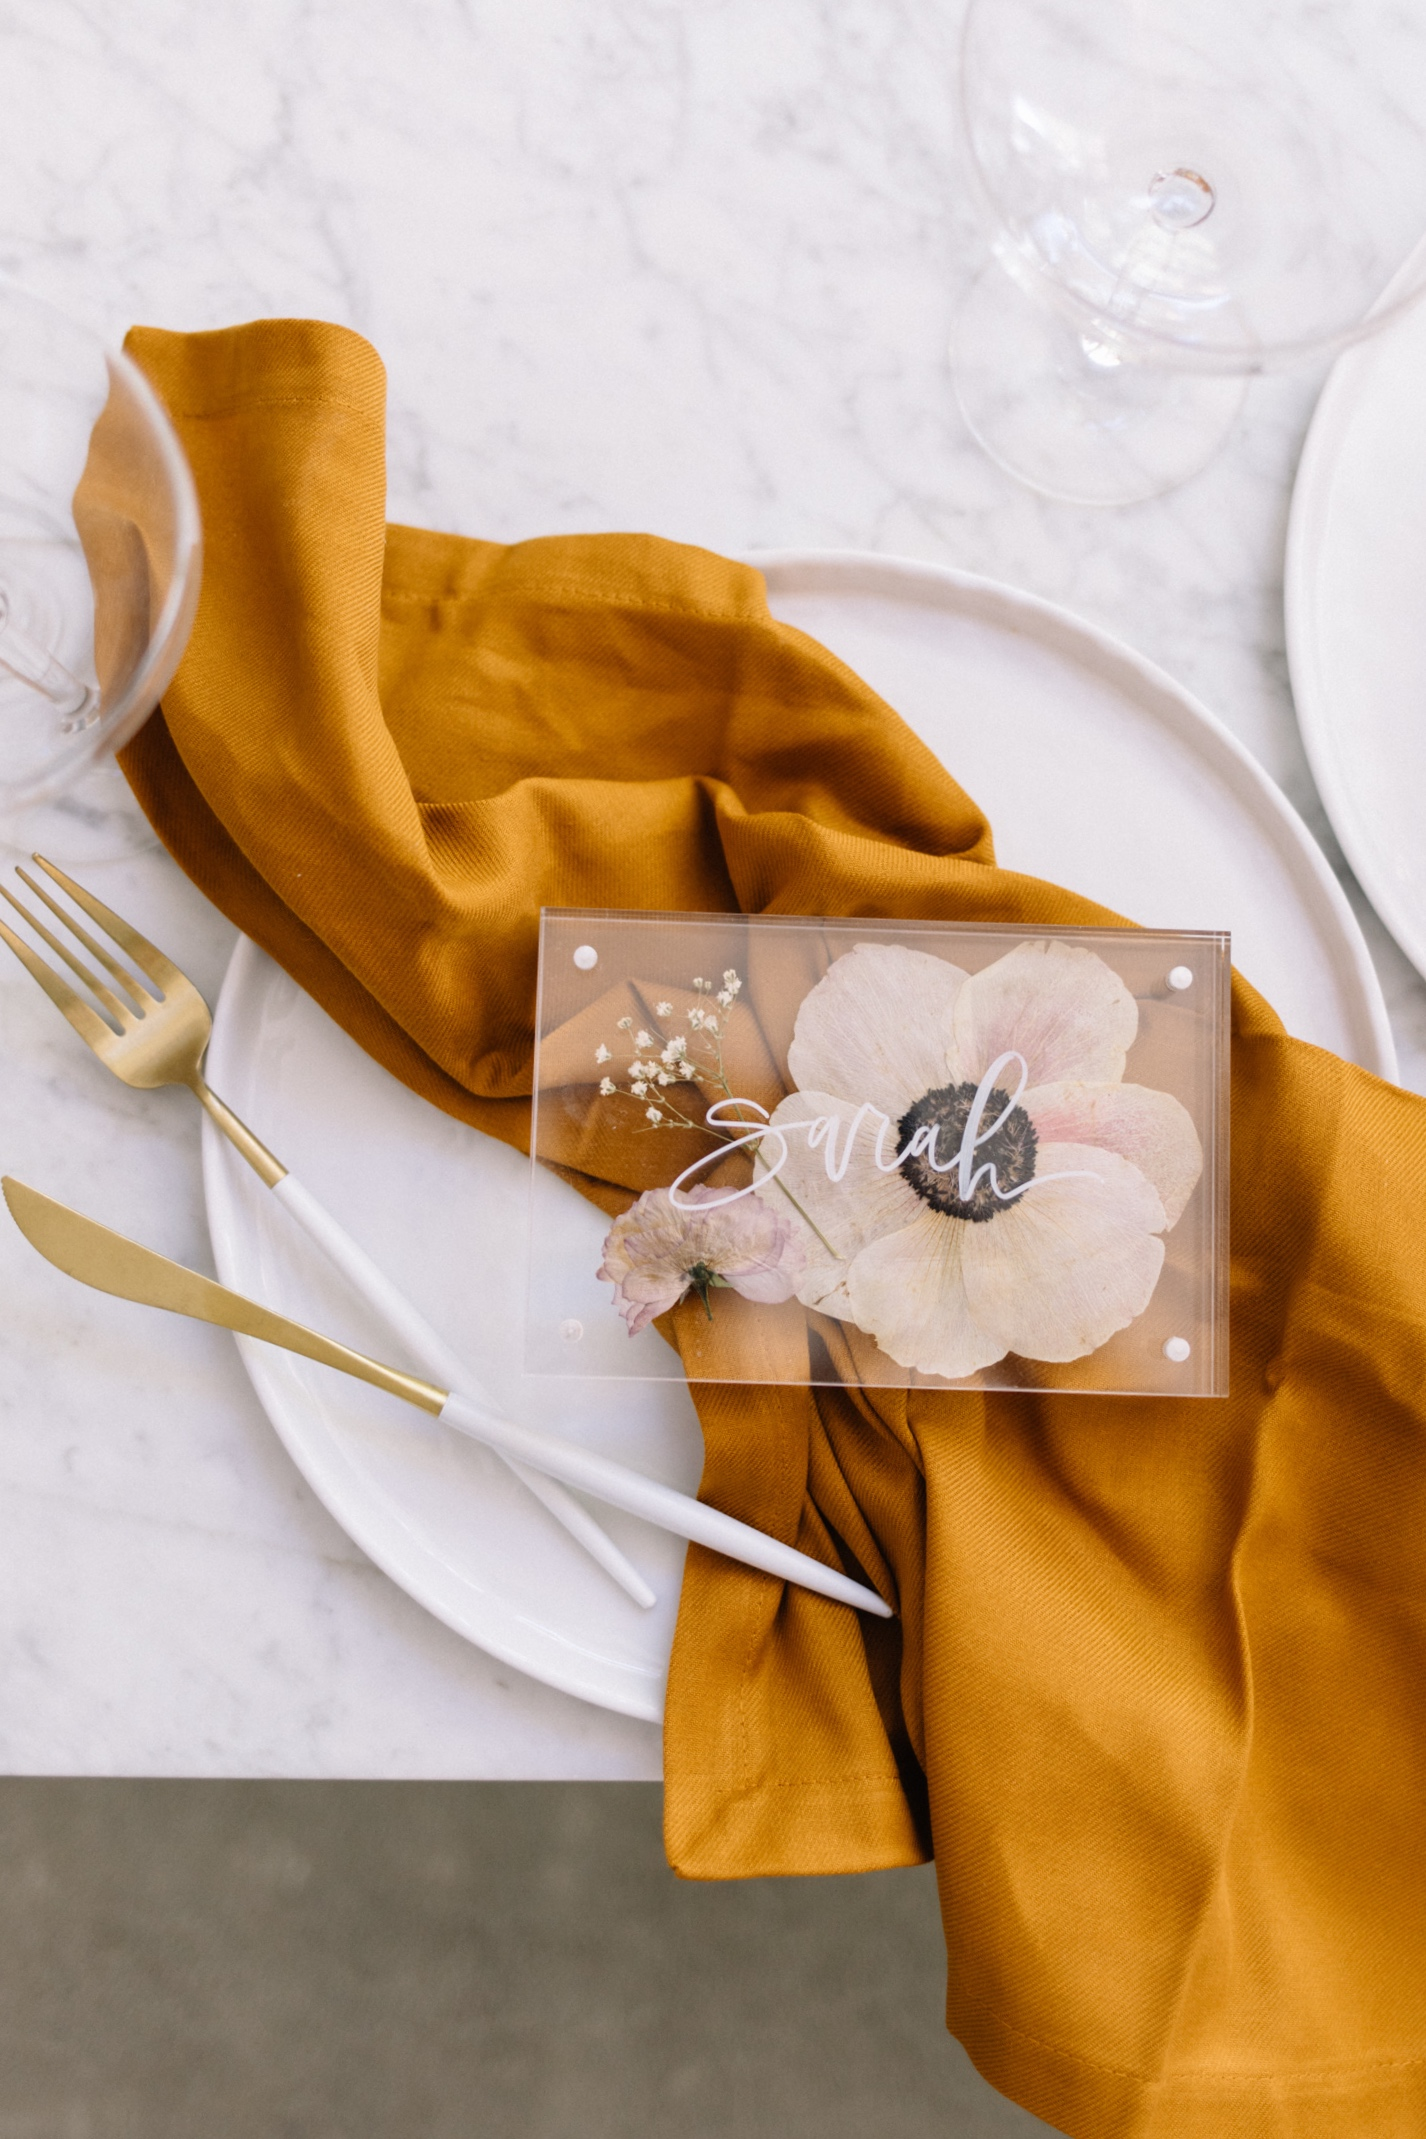 10 easy ways to decorate your home for fall